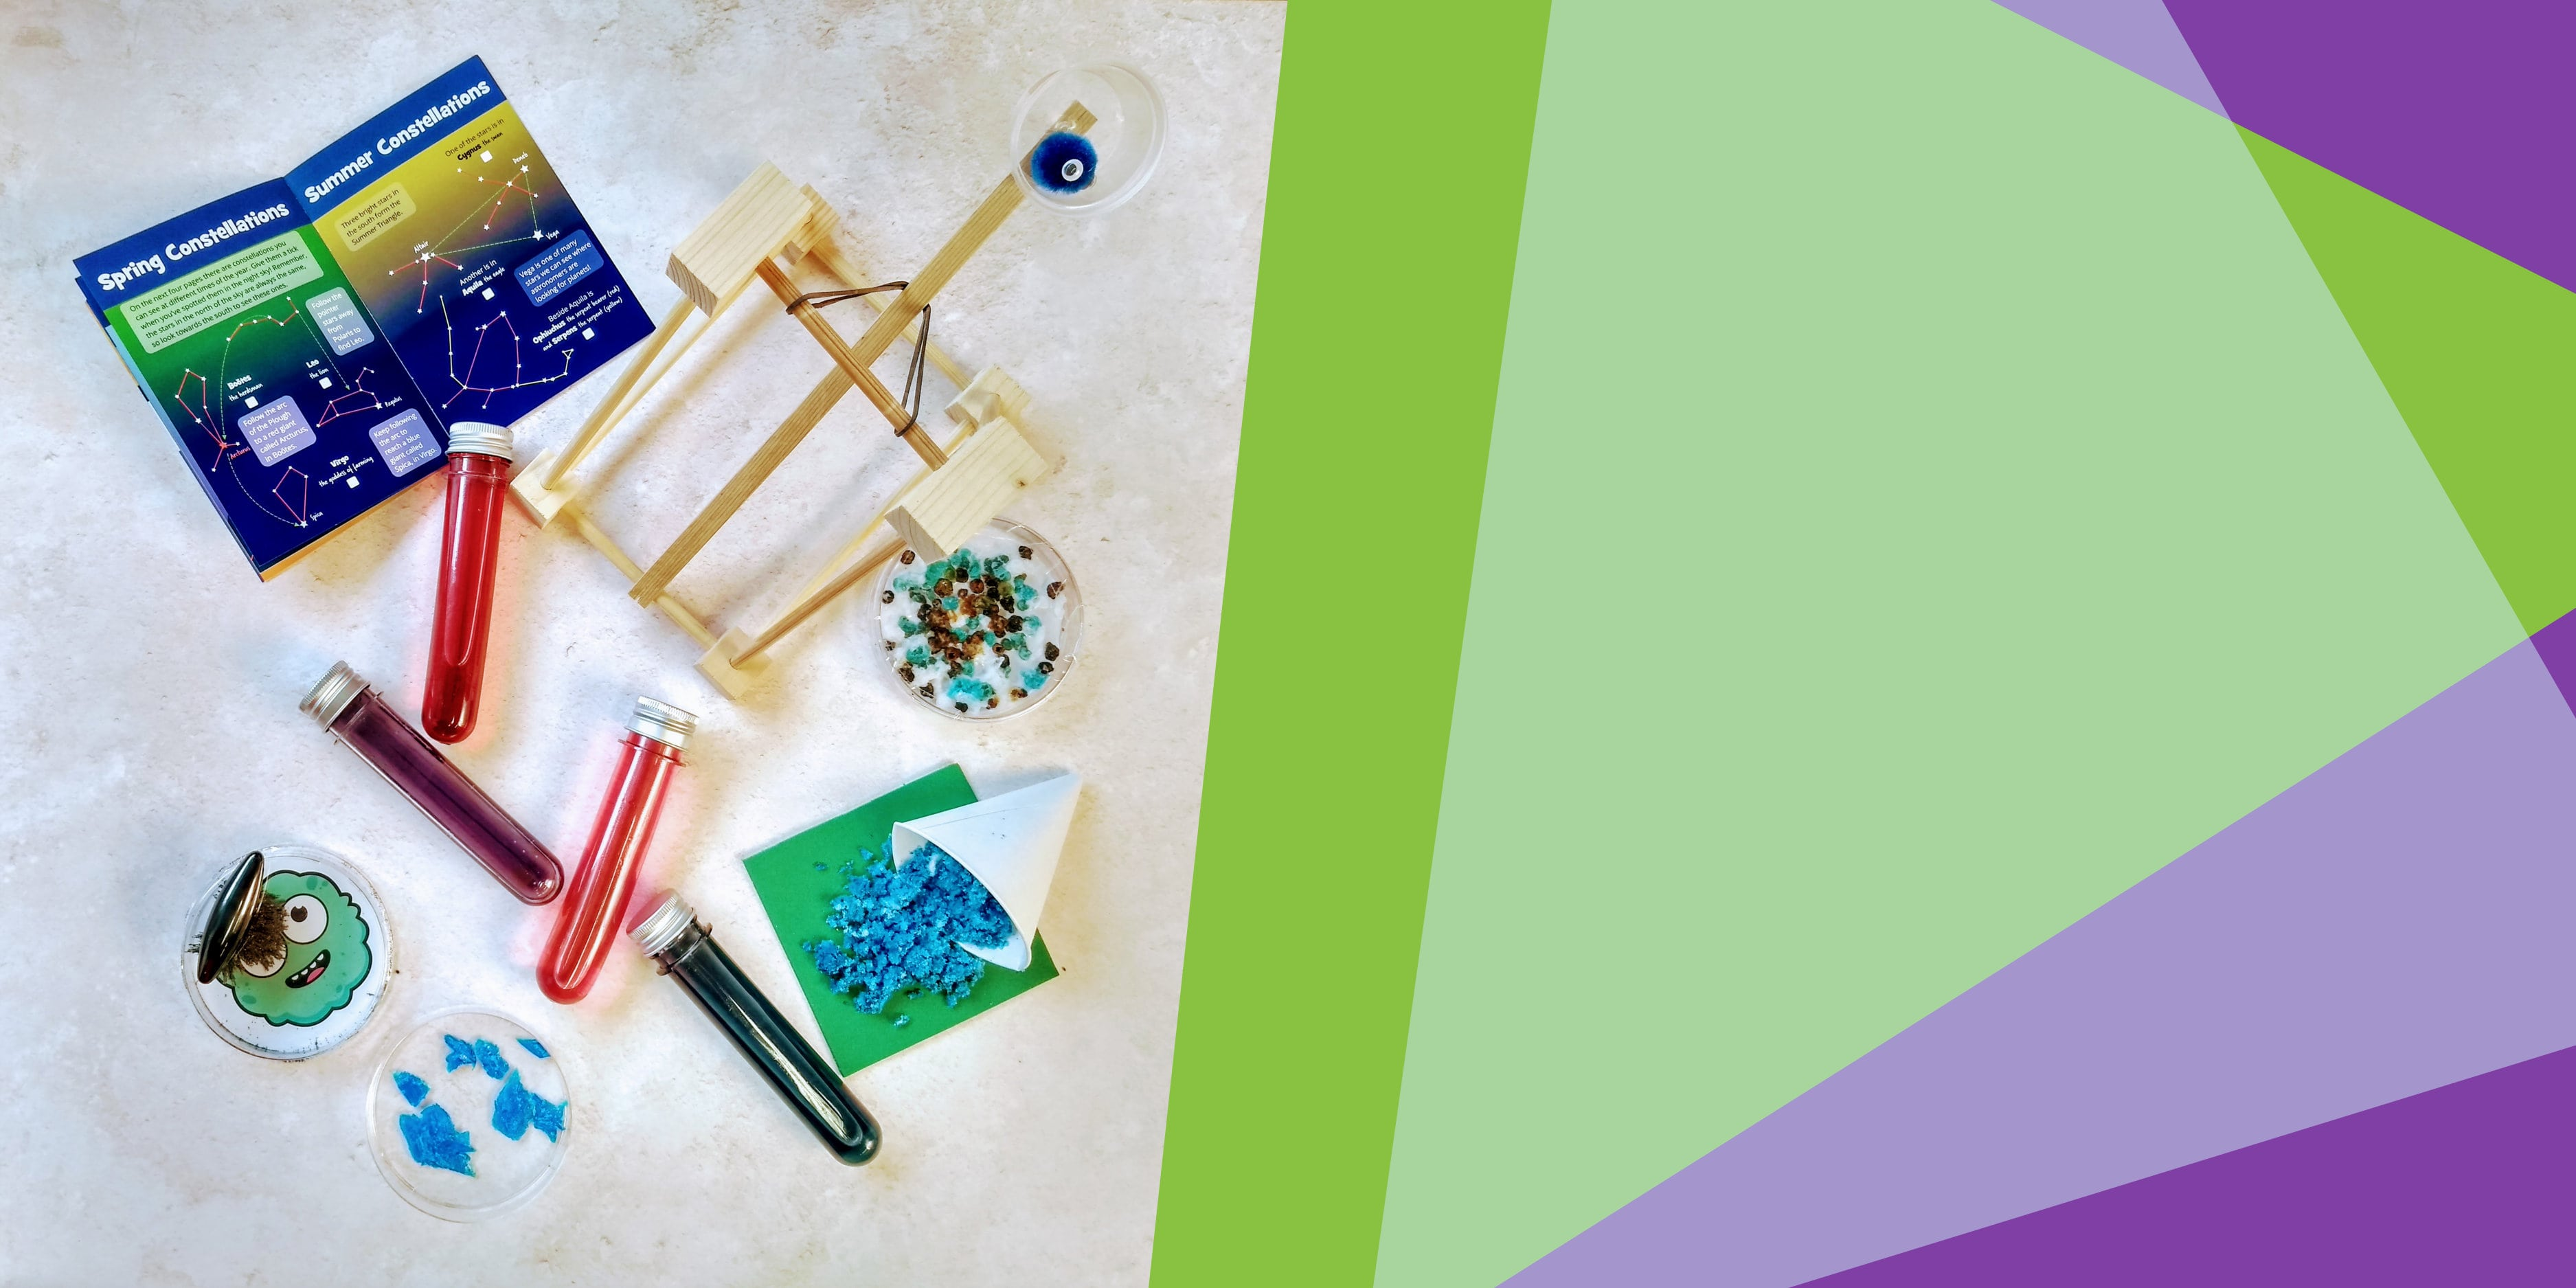 a catapult, colourful test tubes, crystals and other science experiments